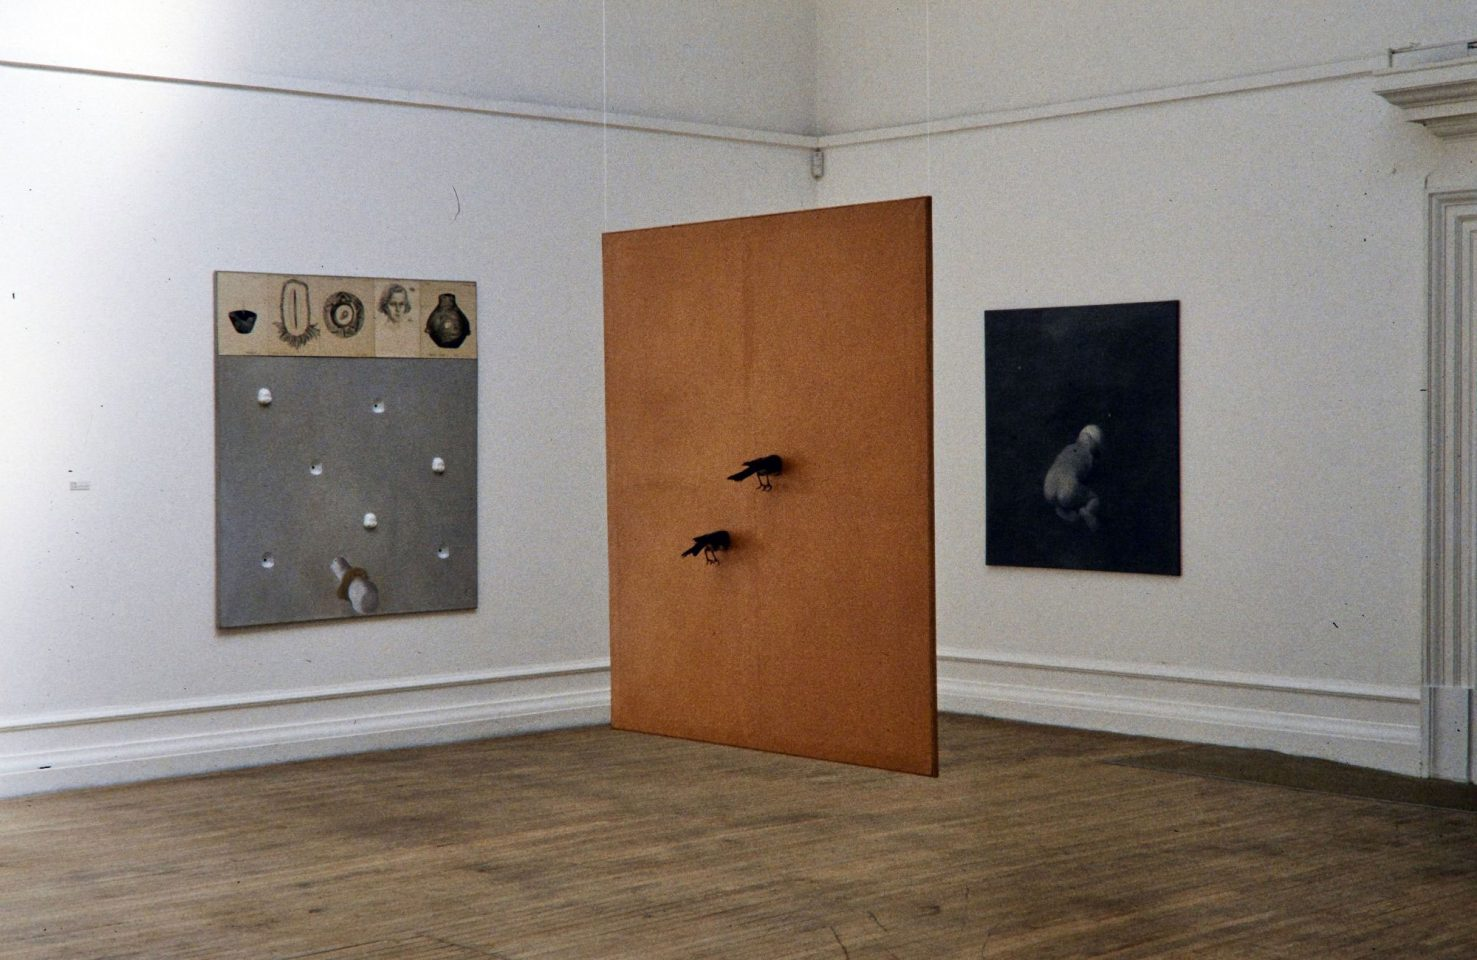 Installation view of 1994 exhibition Distant Voices: Contemporary Art from the Czech Republic featuring artists Milena Dopitova, Petr Nikl, Vaclaw Stratil, Ivan Kafka.